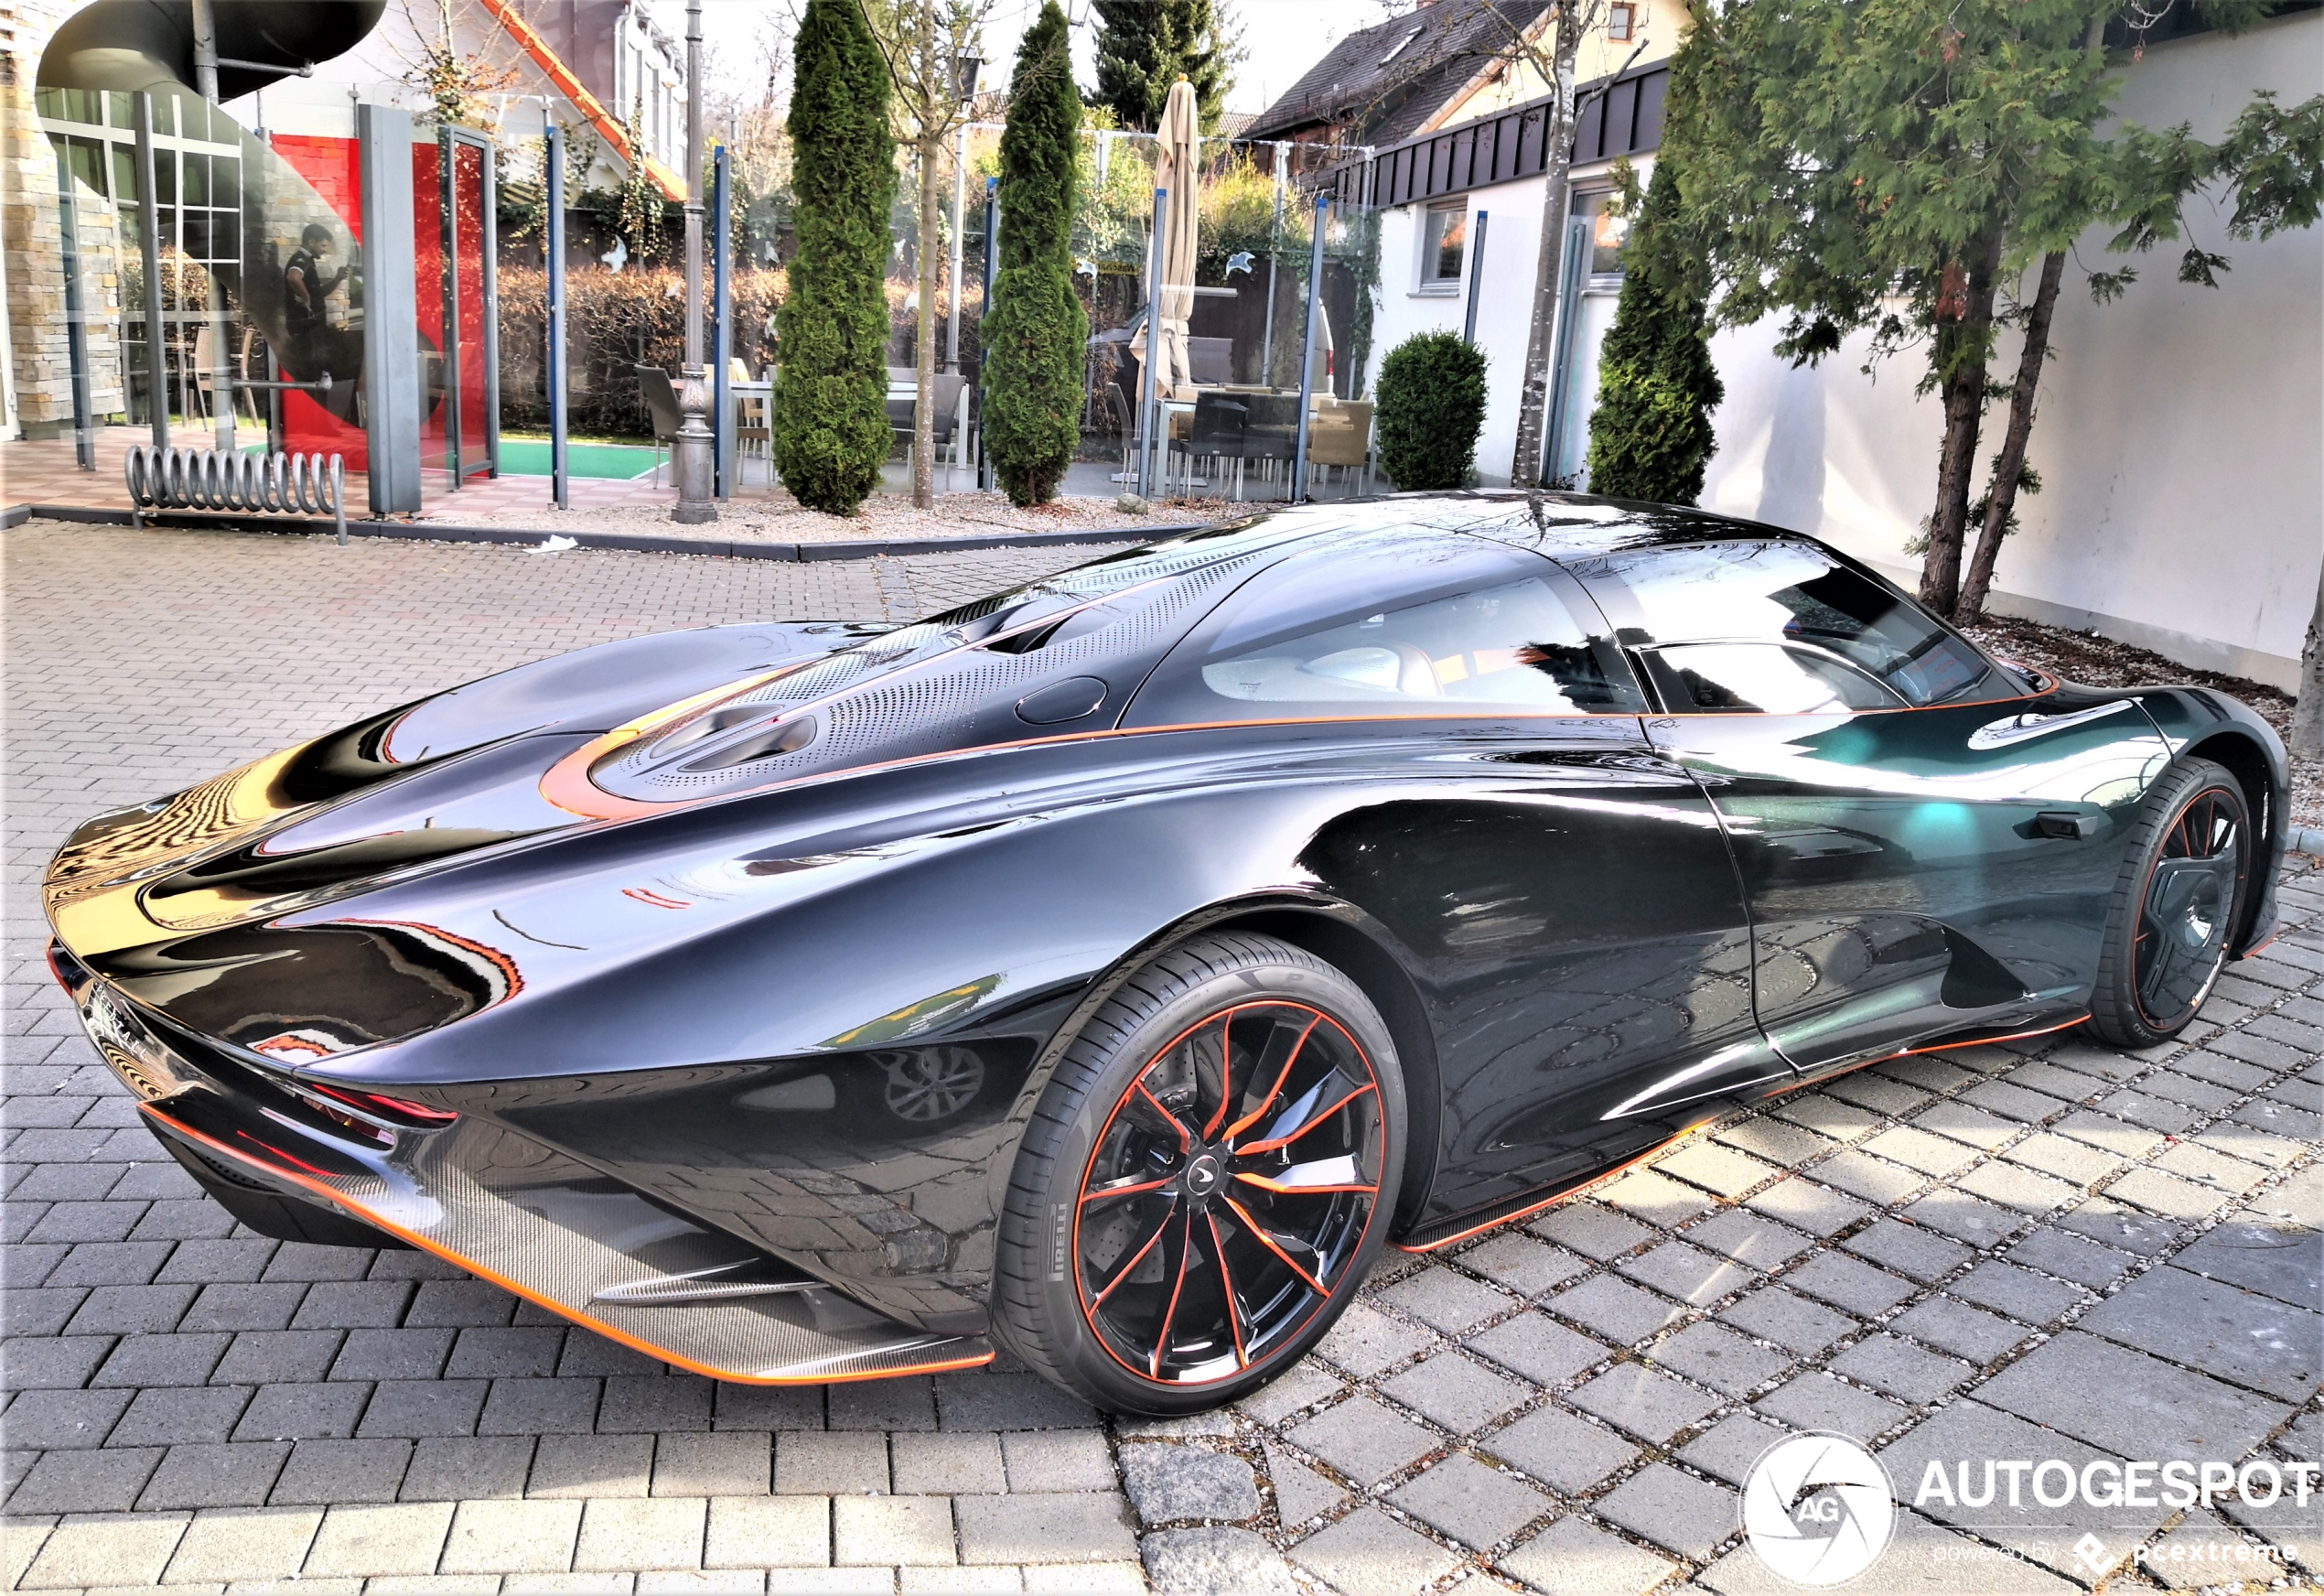 WOW! 2nd McLaren Speedtail shows up in Germany